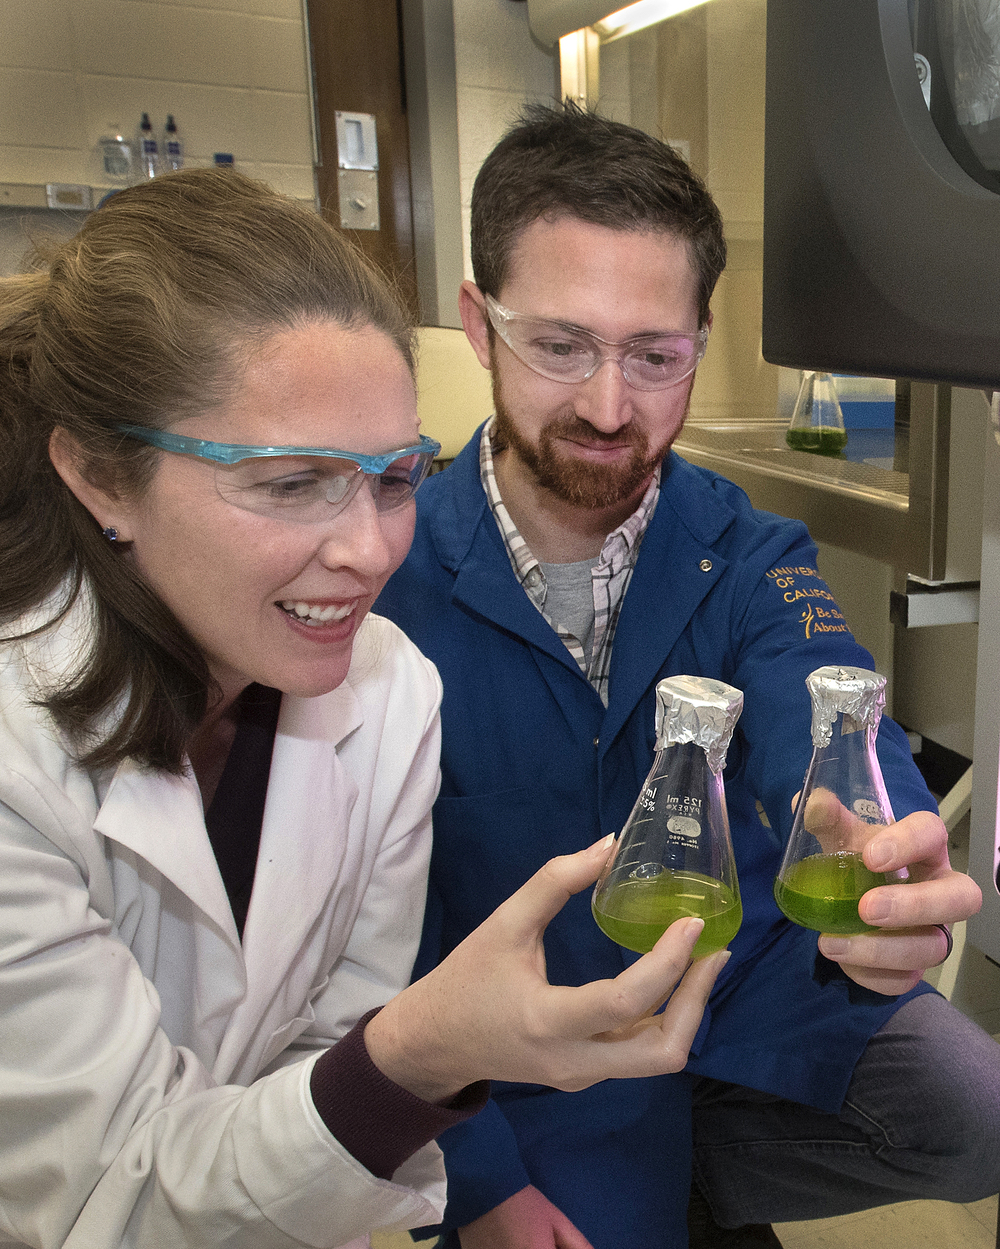 Ian and Crysten Blaby are exploring the genes of algae to better understand—and potentially improve—plants' ability to harness energy.